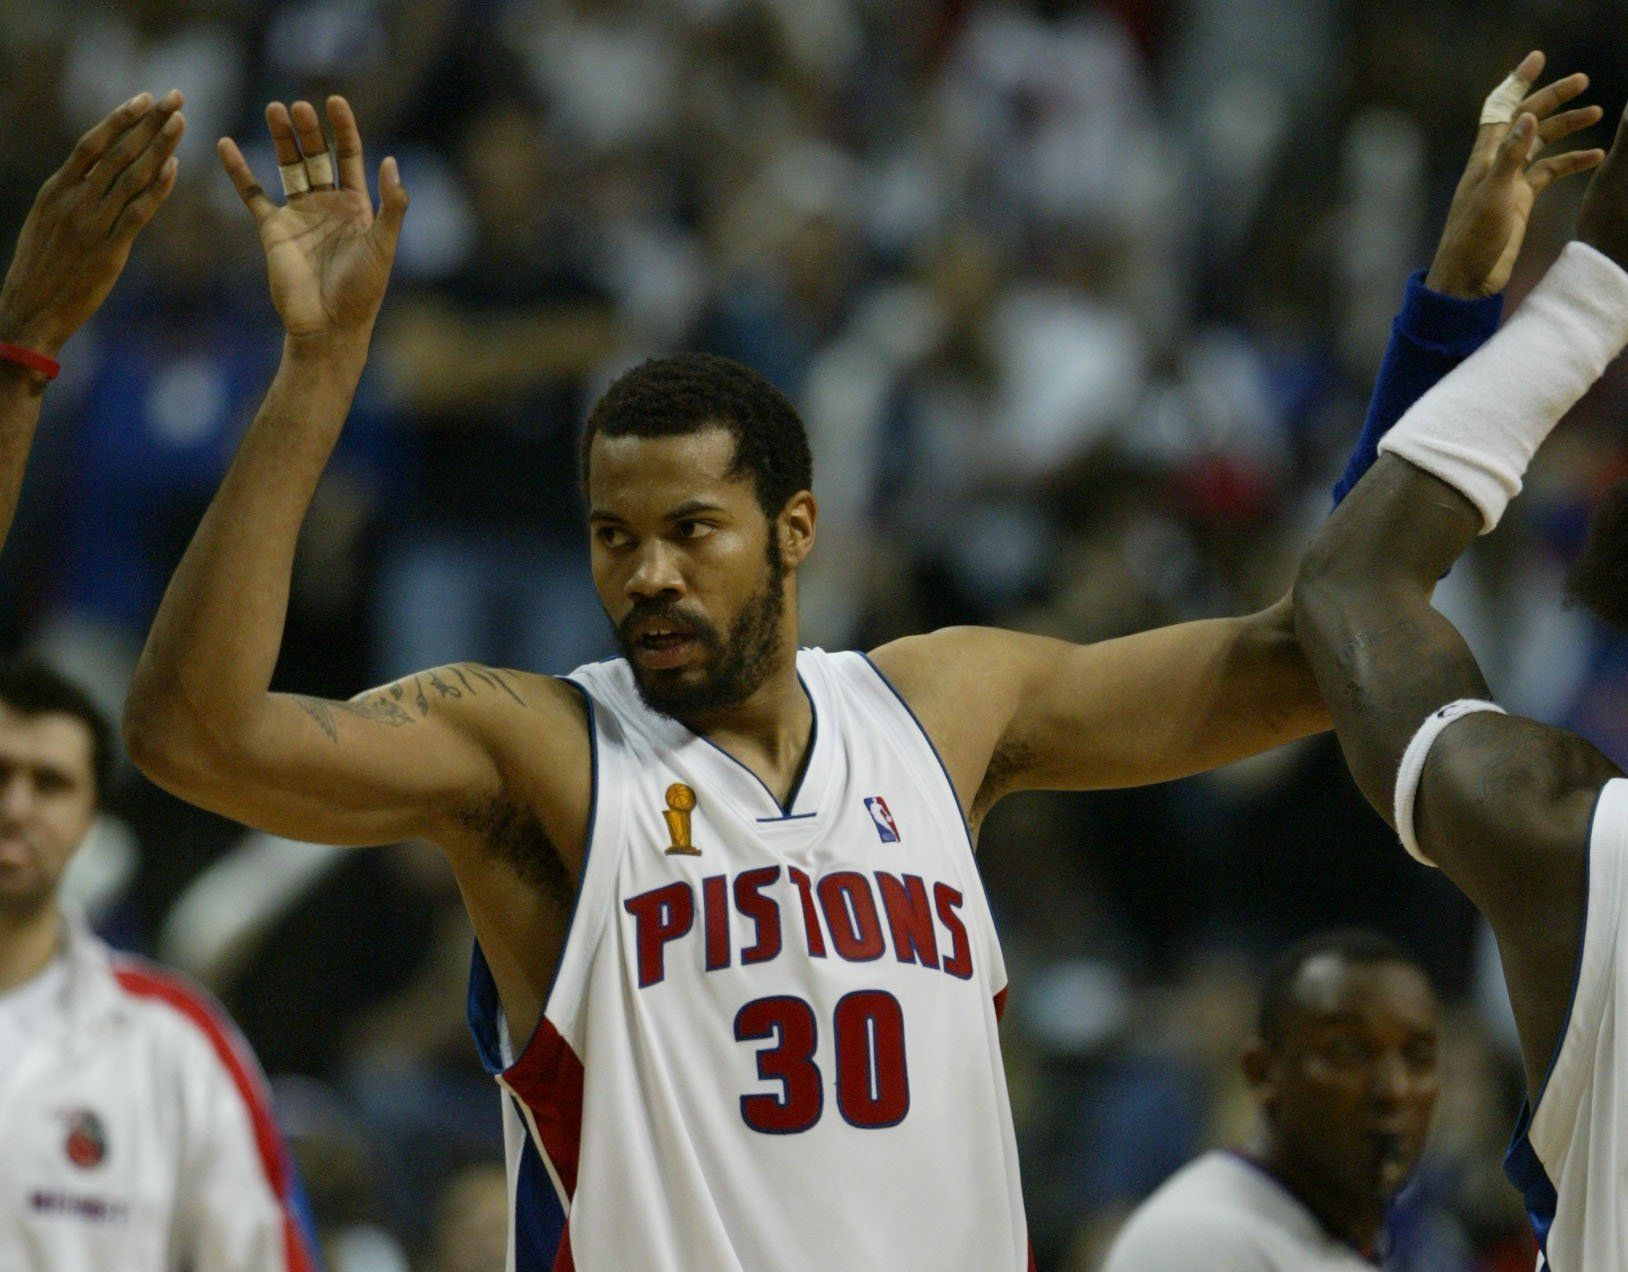 Detroit Pistons' Rasheed Wallace celebrates in the closing seconds of Game 4 against the Los Angeles Lakers of the NBA Finals, June 13, 2004, at the Palace of Auburn Hills. The Pistons defeated the Lakers, 88-80.